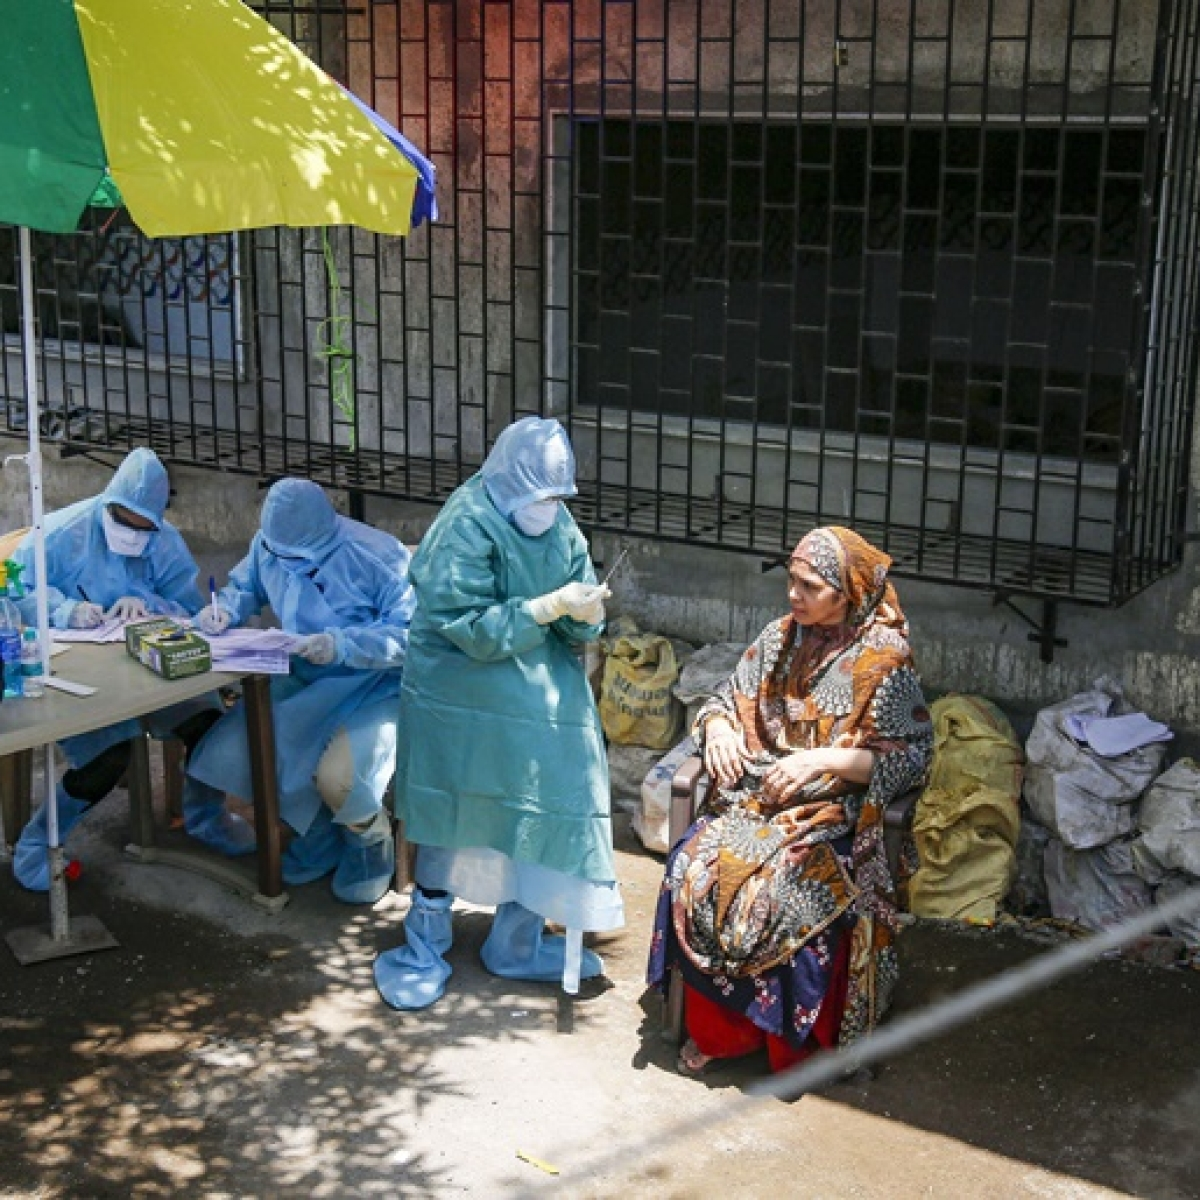 Coronavirus in India: 10 states, UTs reported nearly 79% of new COVID-19 deaths in 24-hour span, says govt data